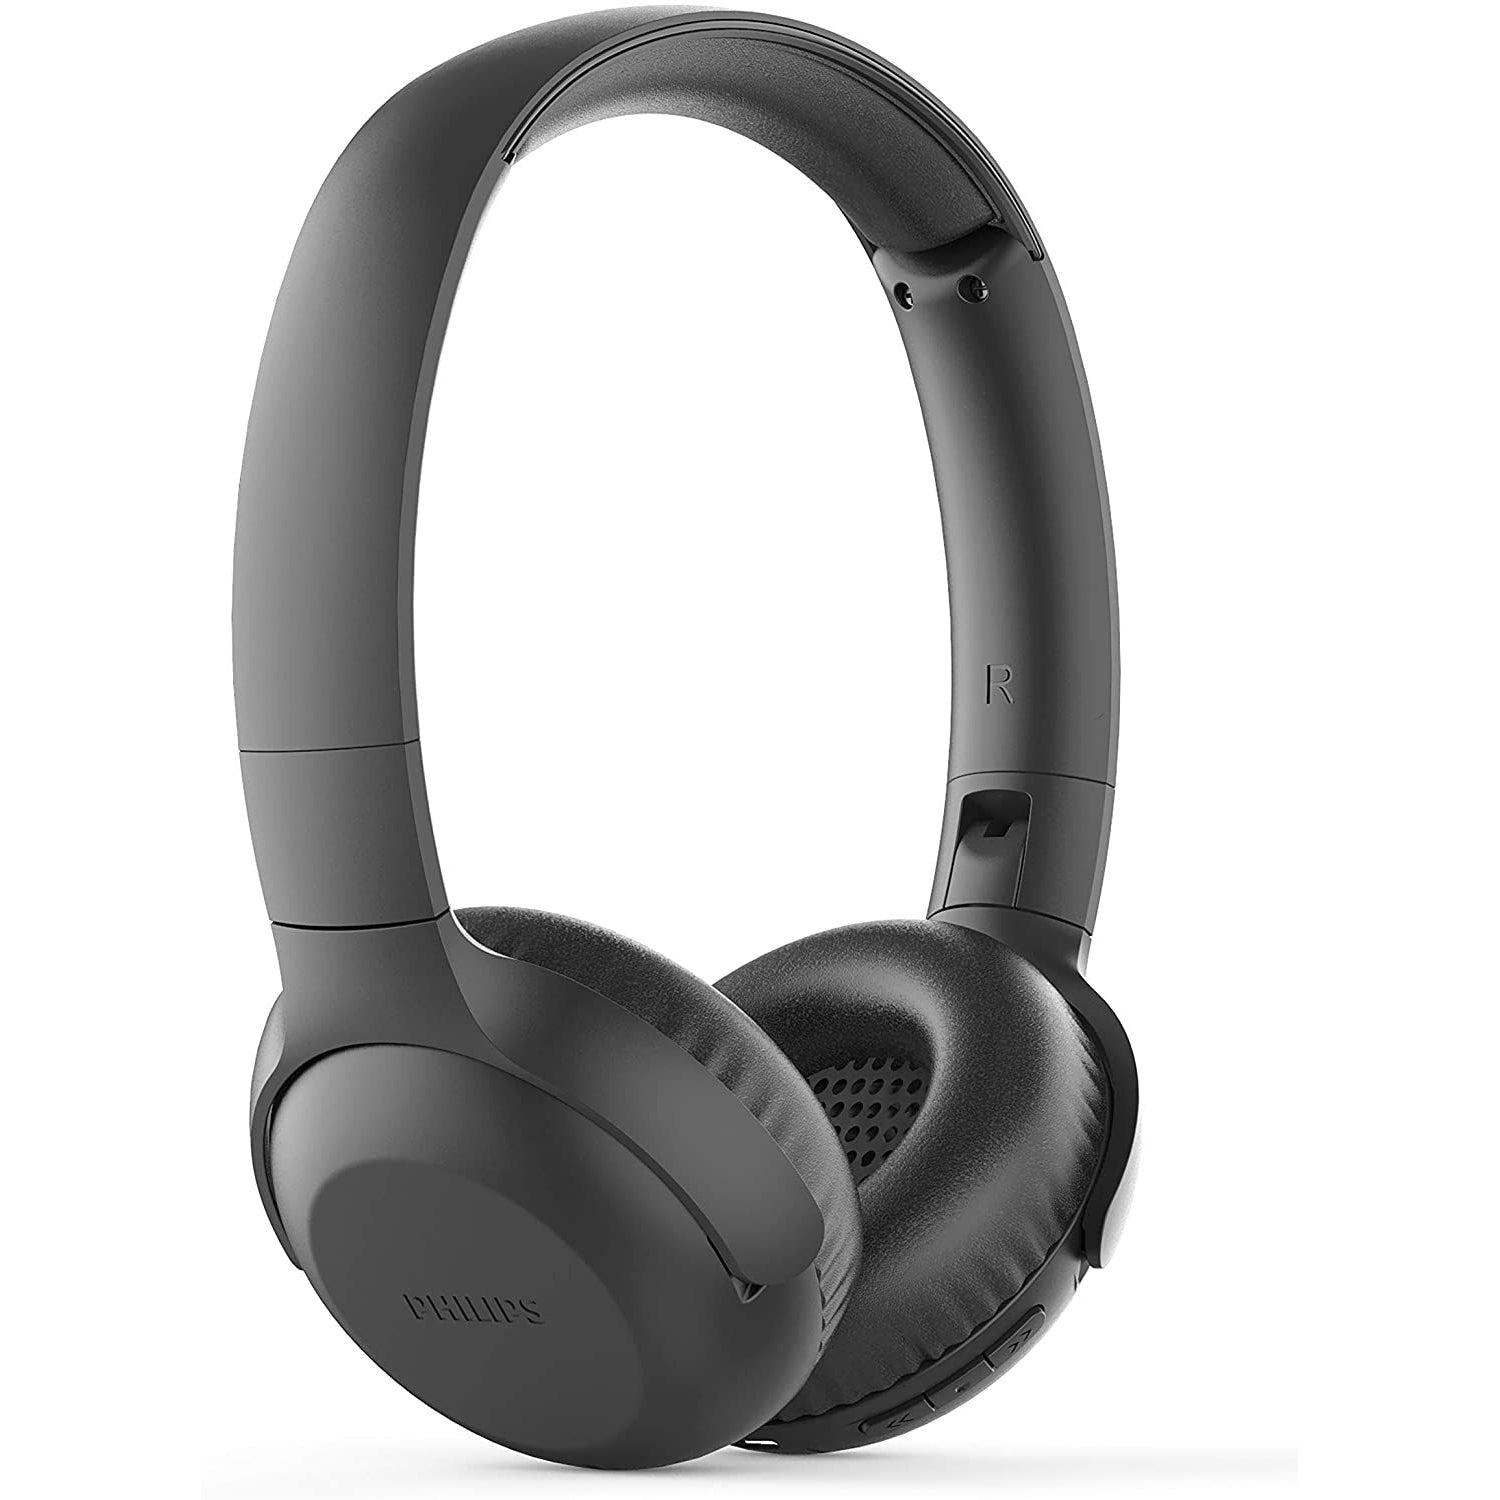 Philips On Ear Headphones UH202BK/00 Bluetooth - Black [Accessories]